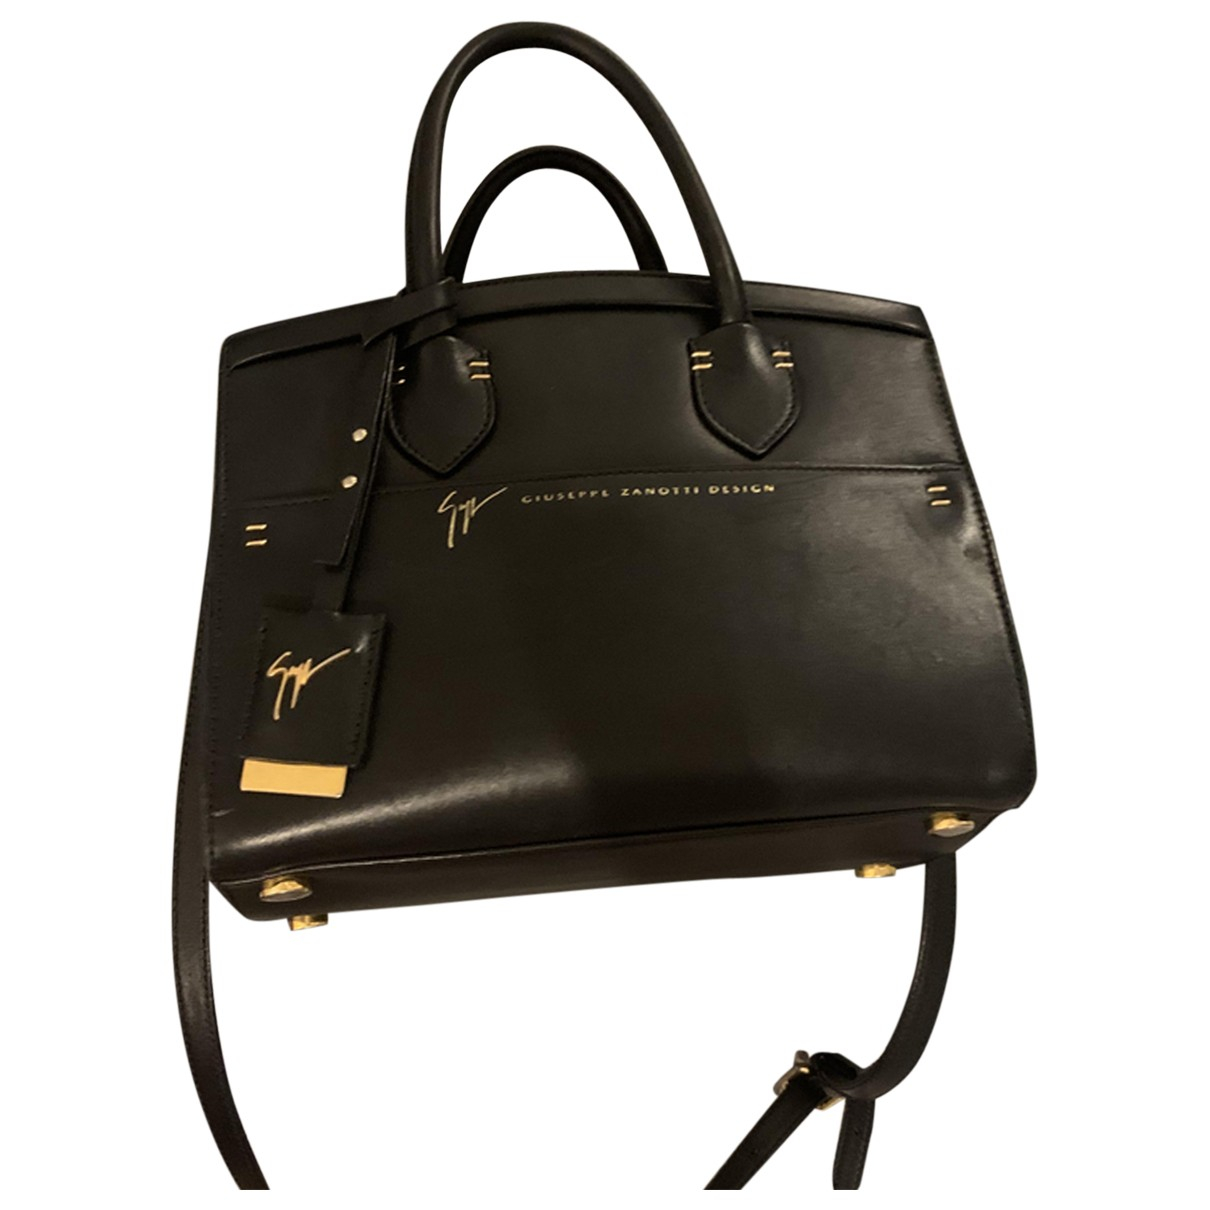 Giuseppe Zanotti \N Black Leather handbag for Women \N